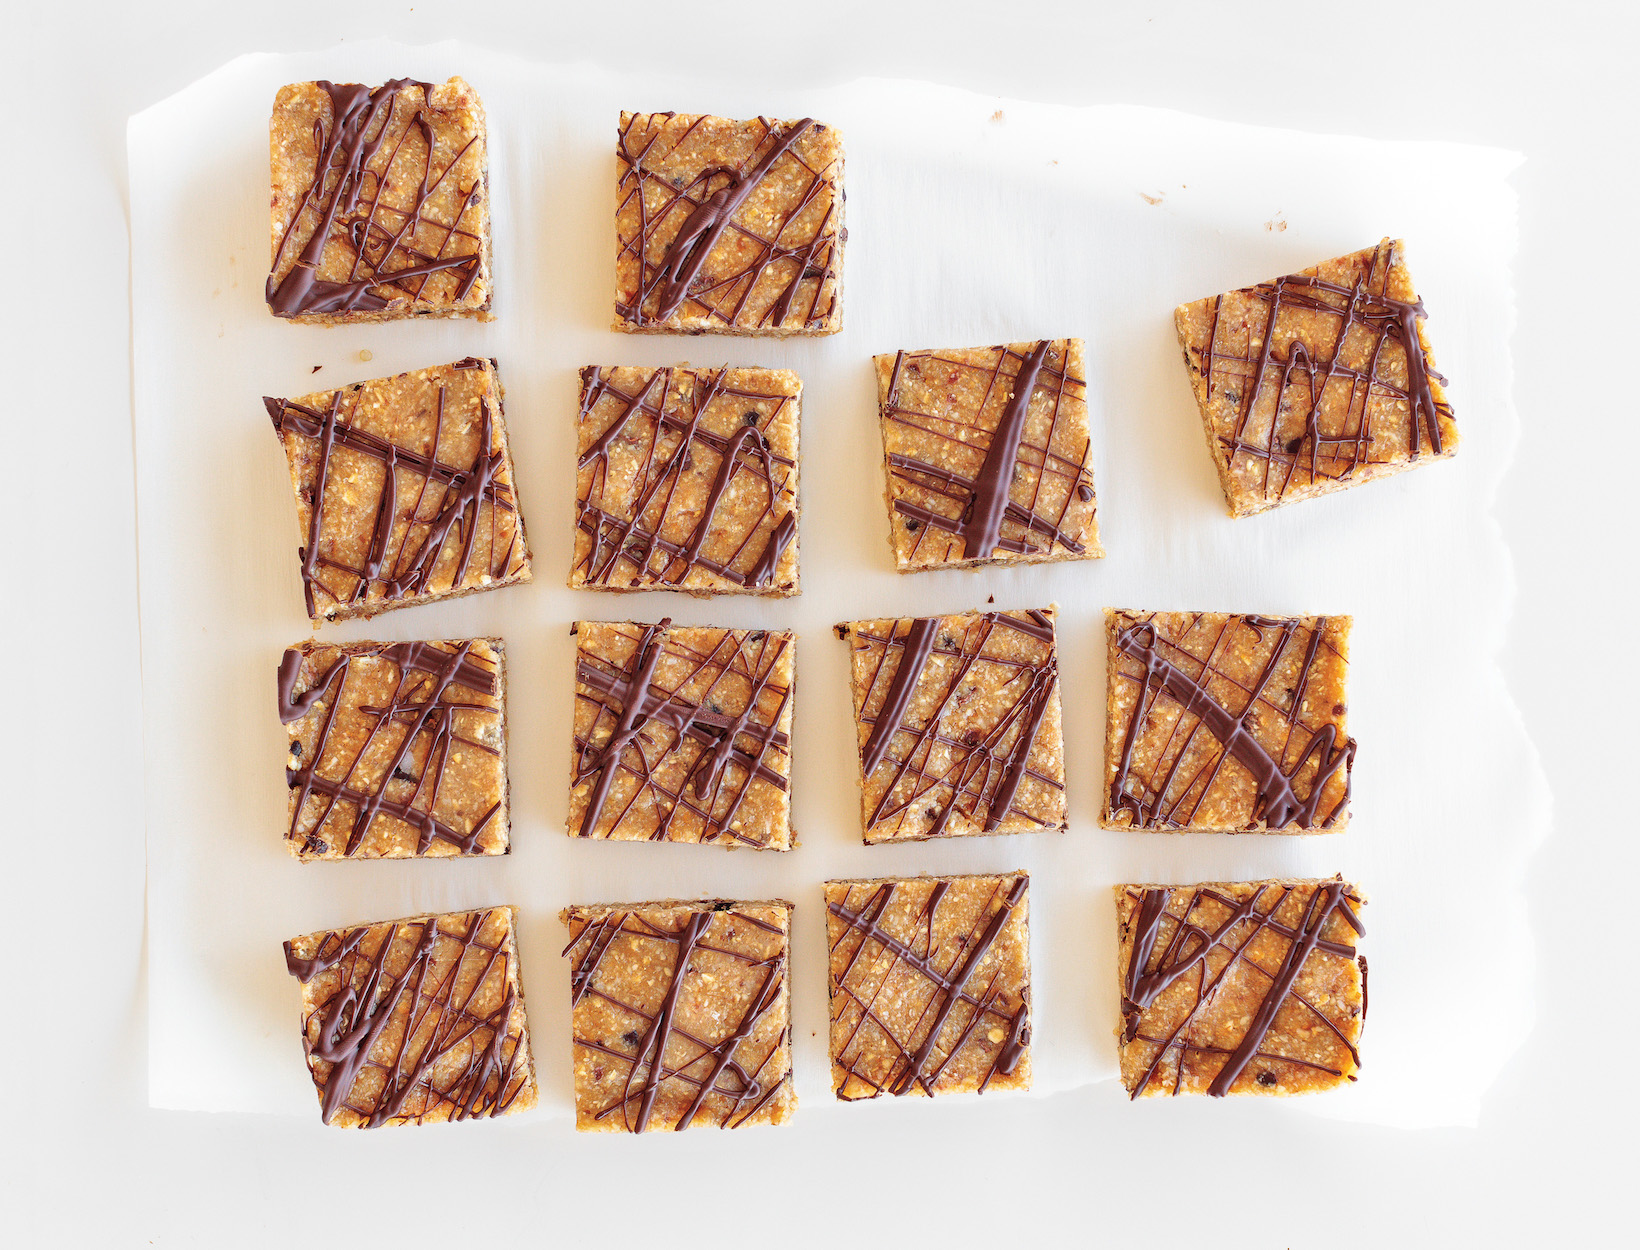 Lily's Cookie Dough Bars